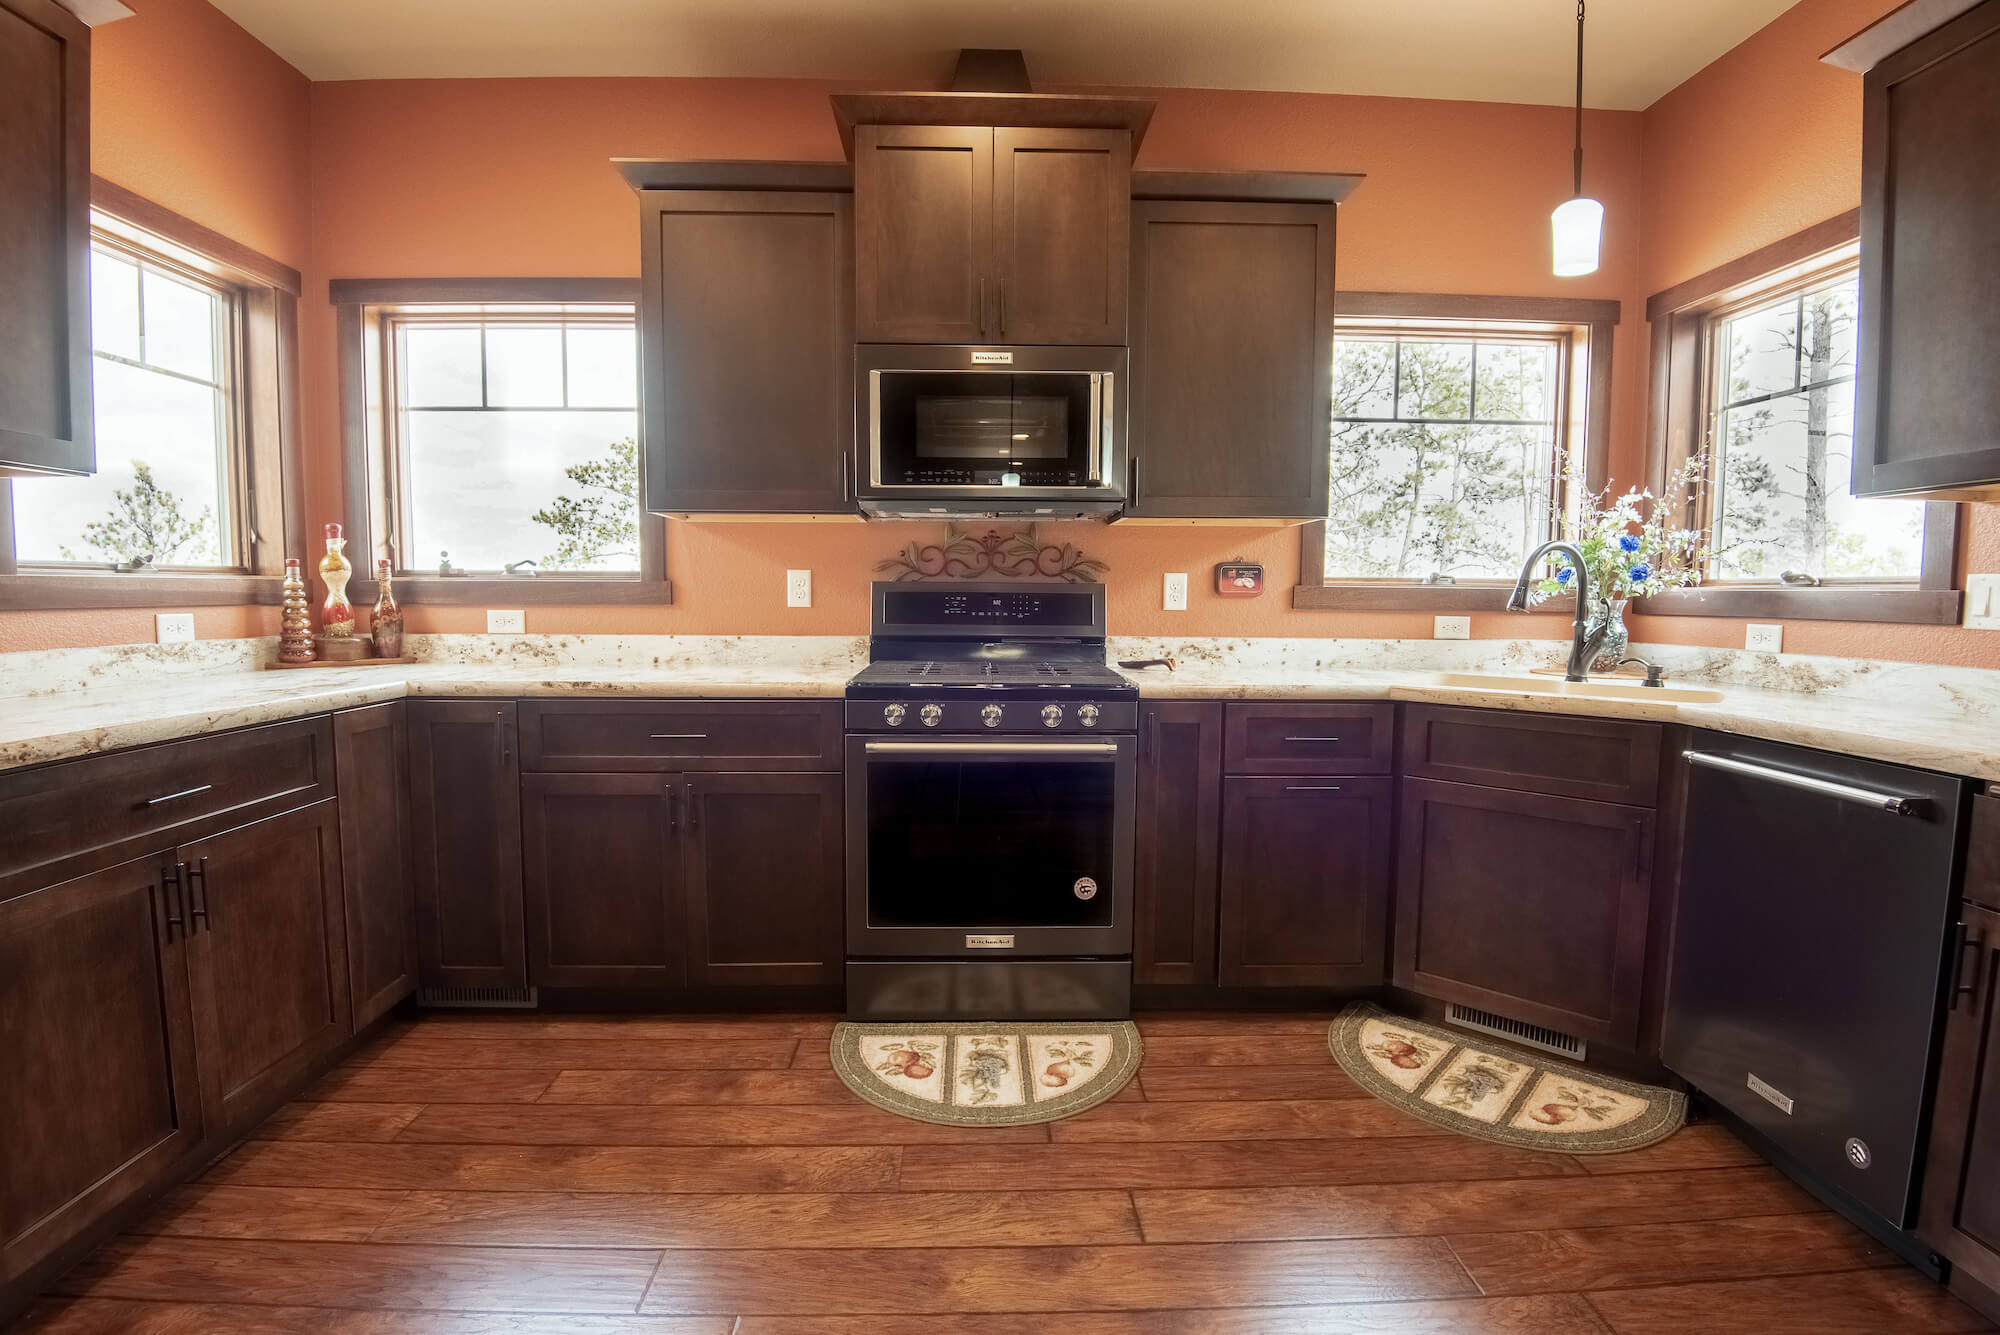 New Low Maintenance Home In Rapid City With Great City